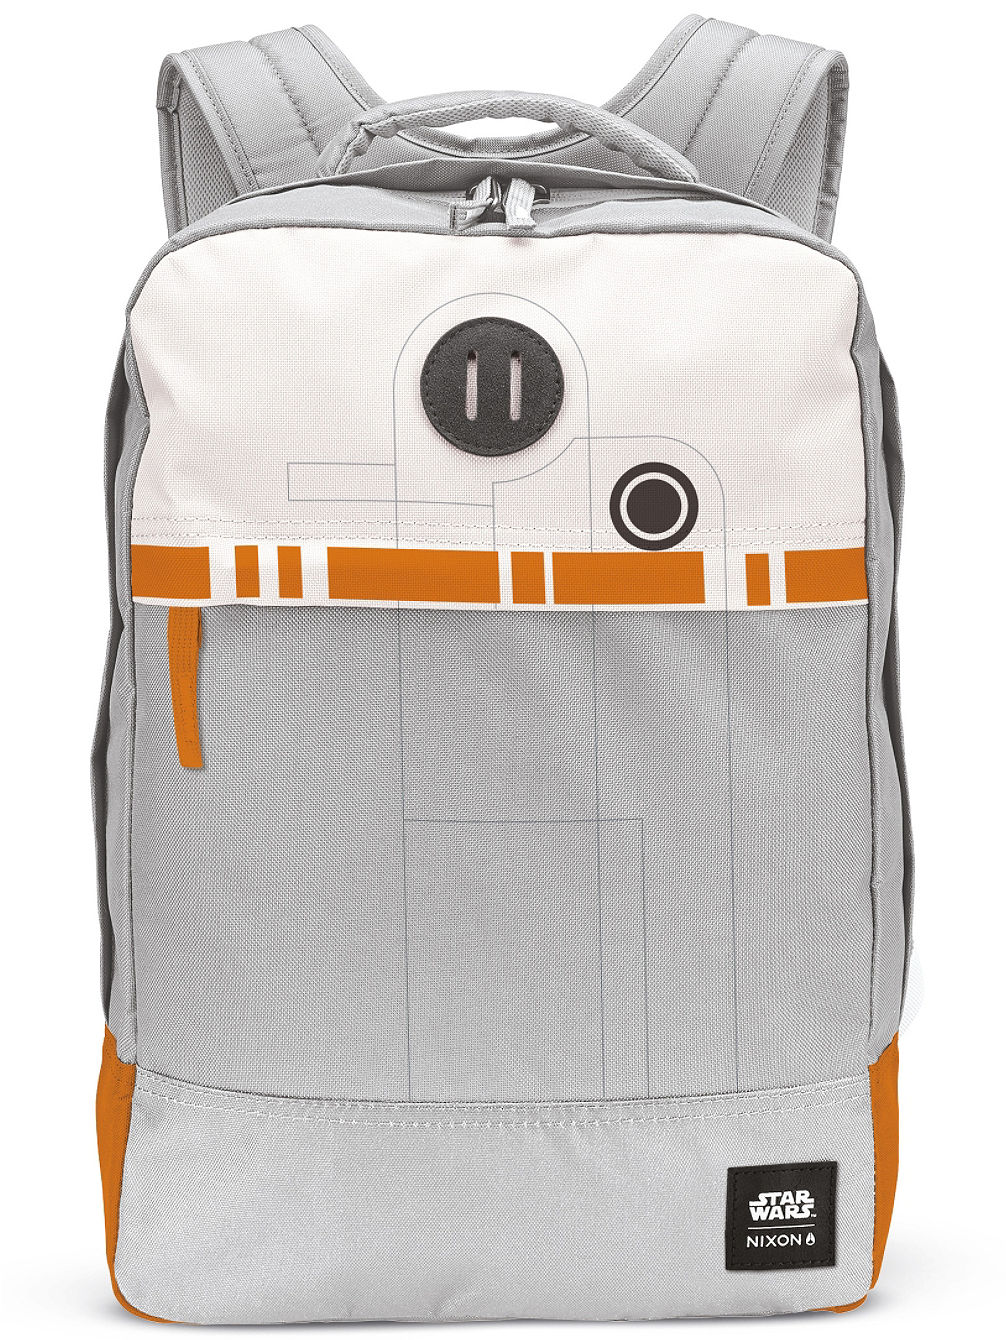 Beacons Star Wars Backpack